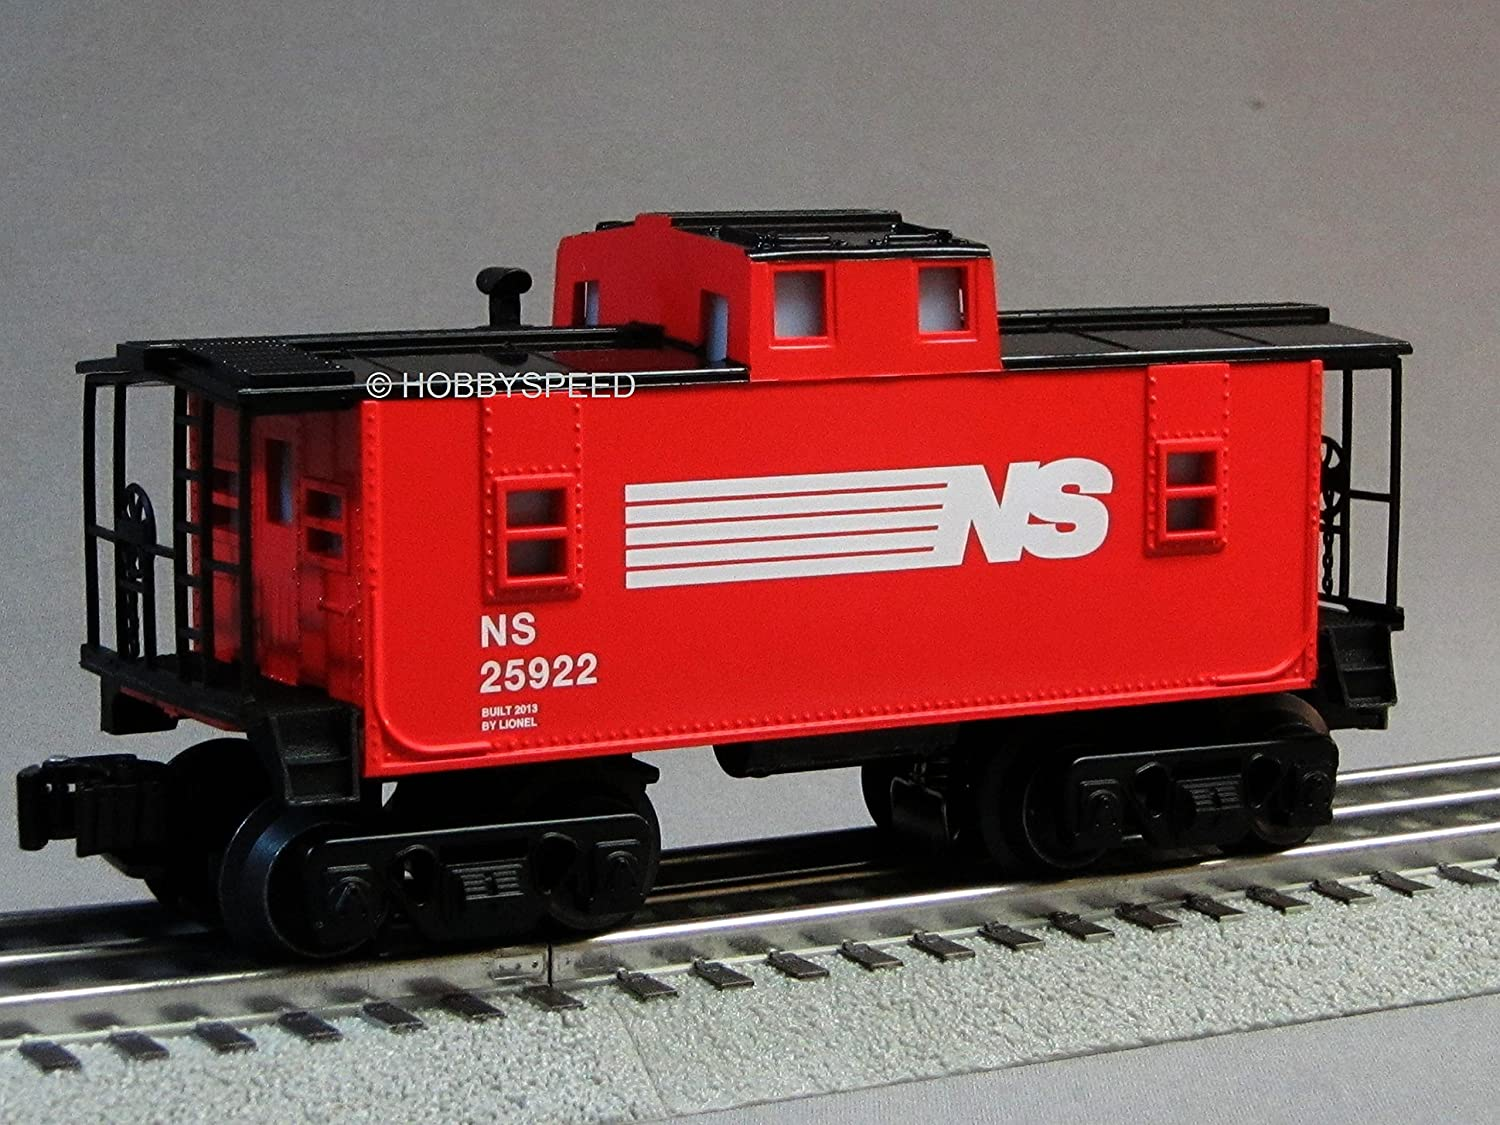 LIONEL NORFOLK SOUTHERN CABOOSE 6-30226 train ns heritage